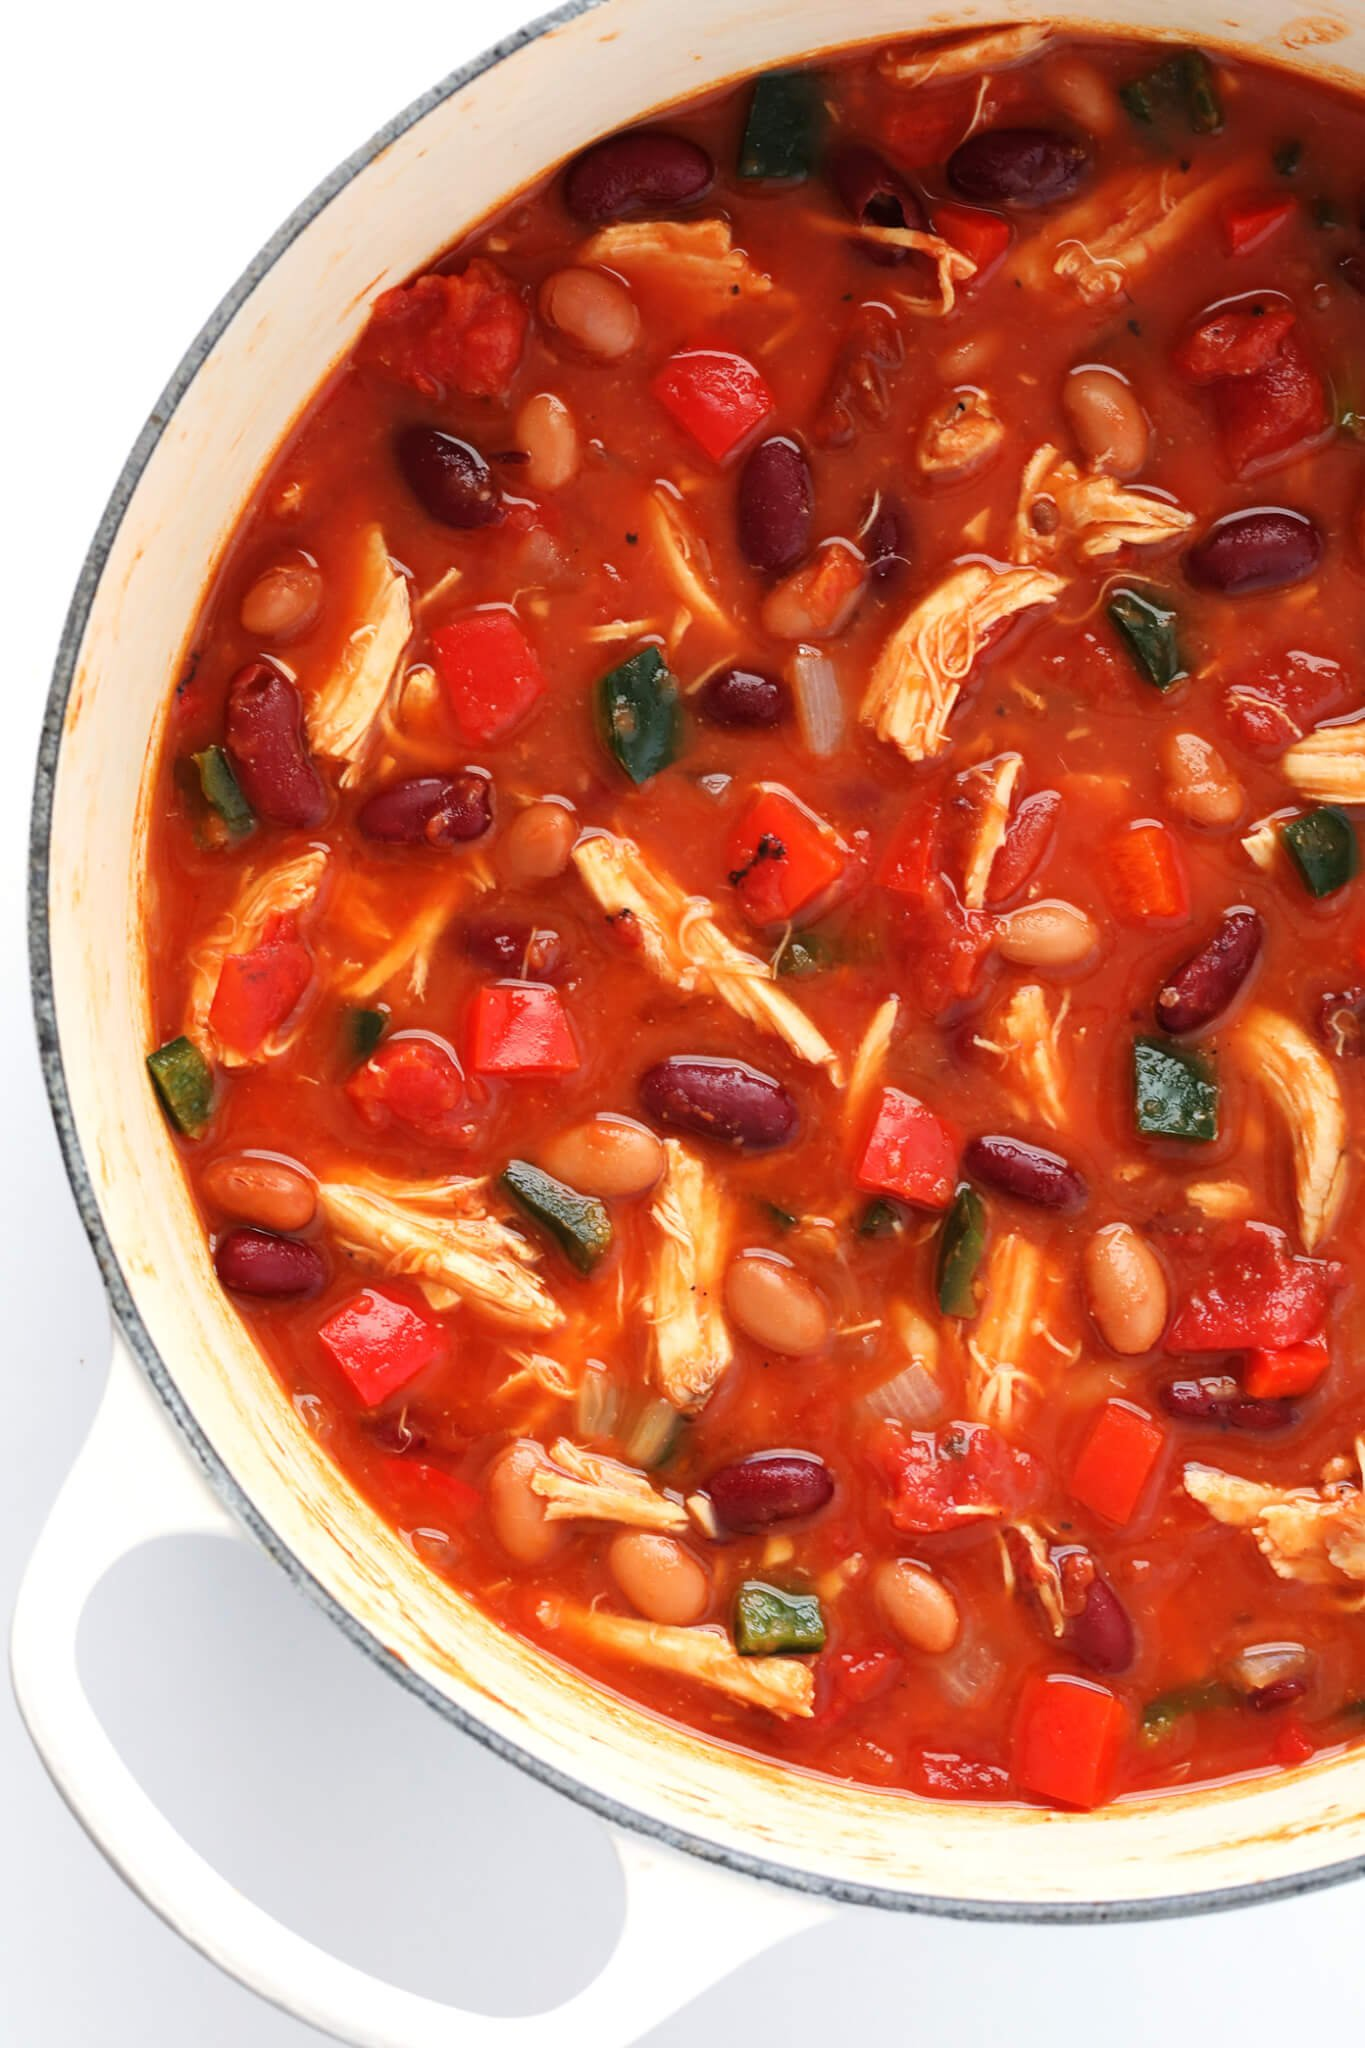 This 20-Minute Chipotle Chicken Chili recipe is quick and easy to prepare, naturally gluten-free, and made with ingredients you can feel good about. Feel free to top with avocado, cheese, cilantro, or whatever sounds good. And of course, sub in ground turkey or beef in place of chicken, if you'd like.